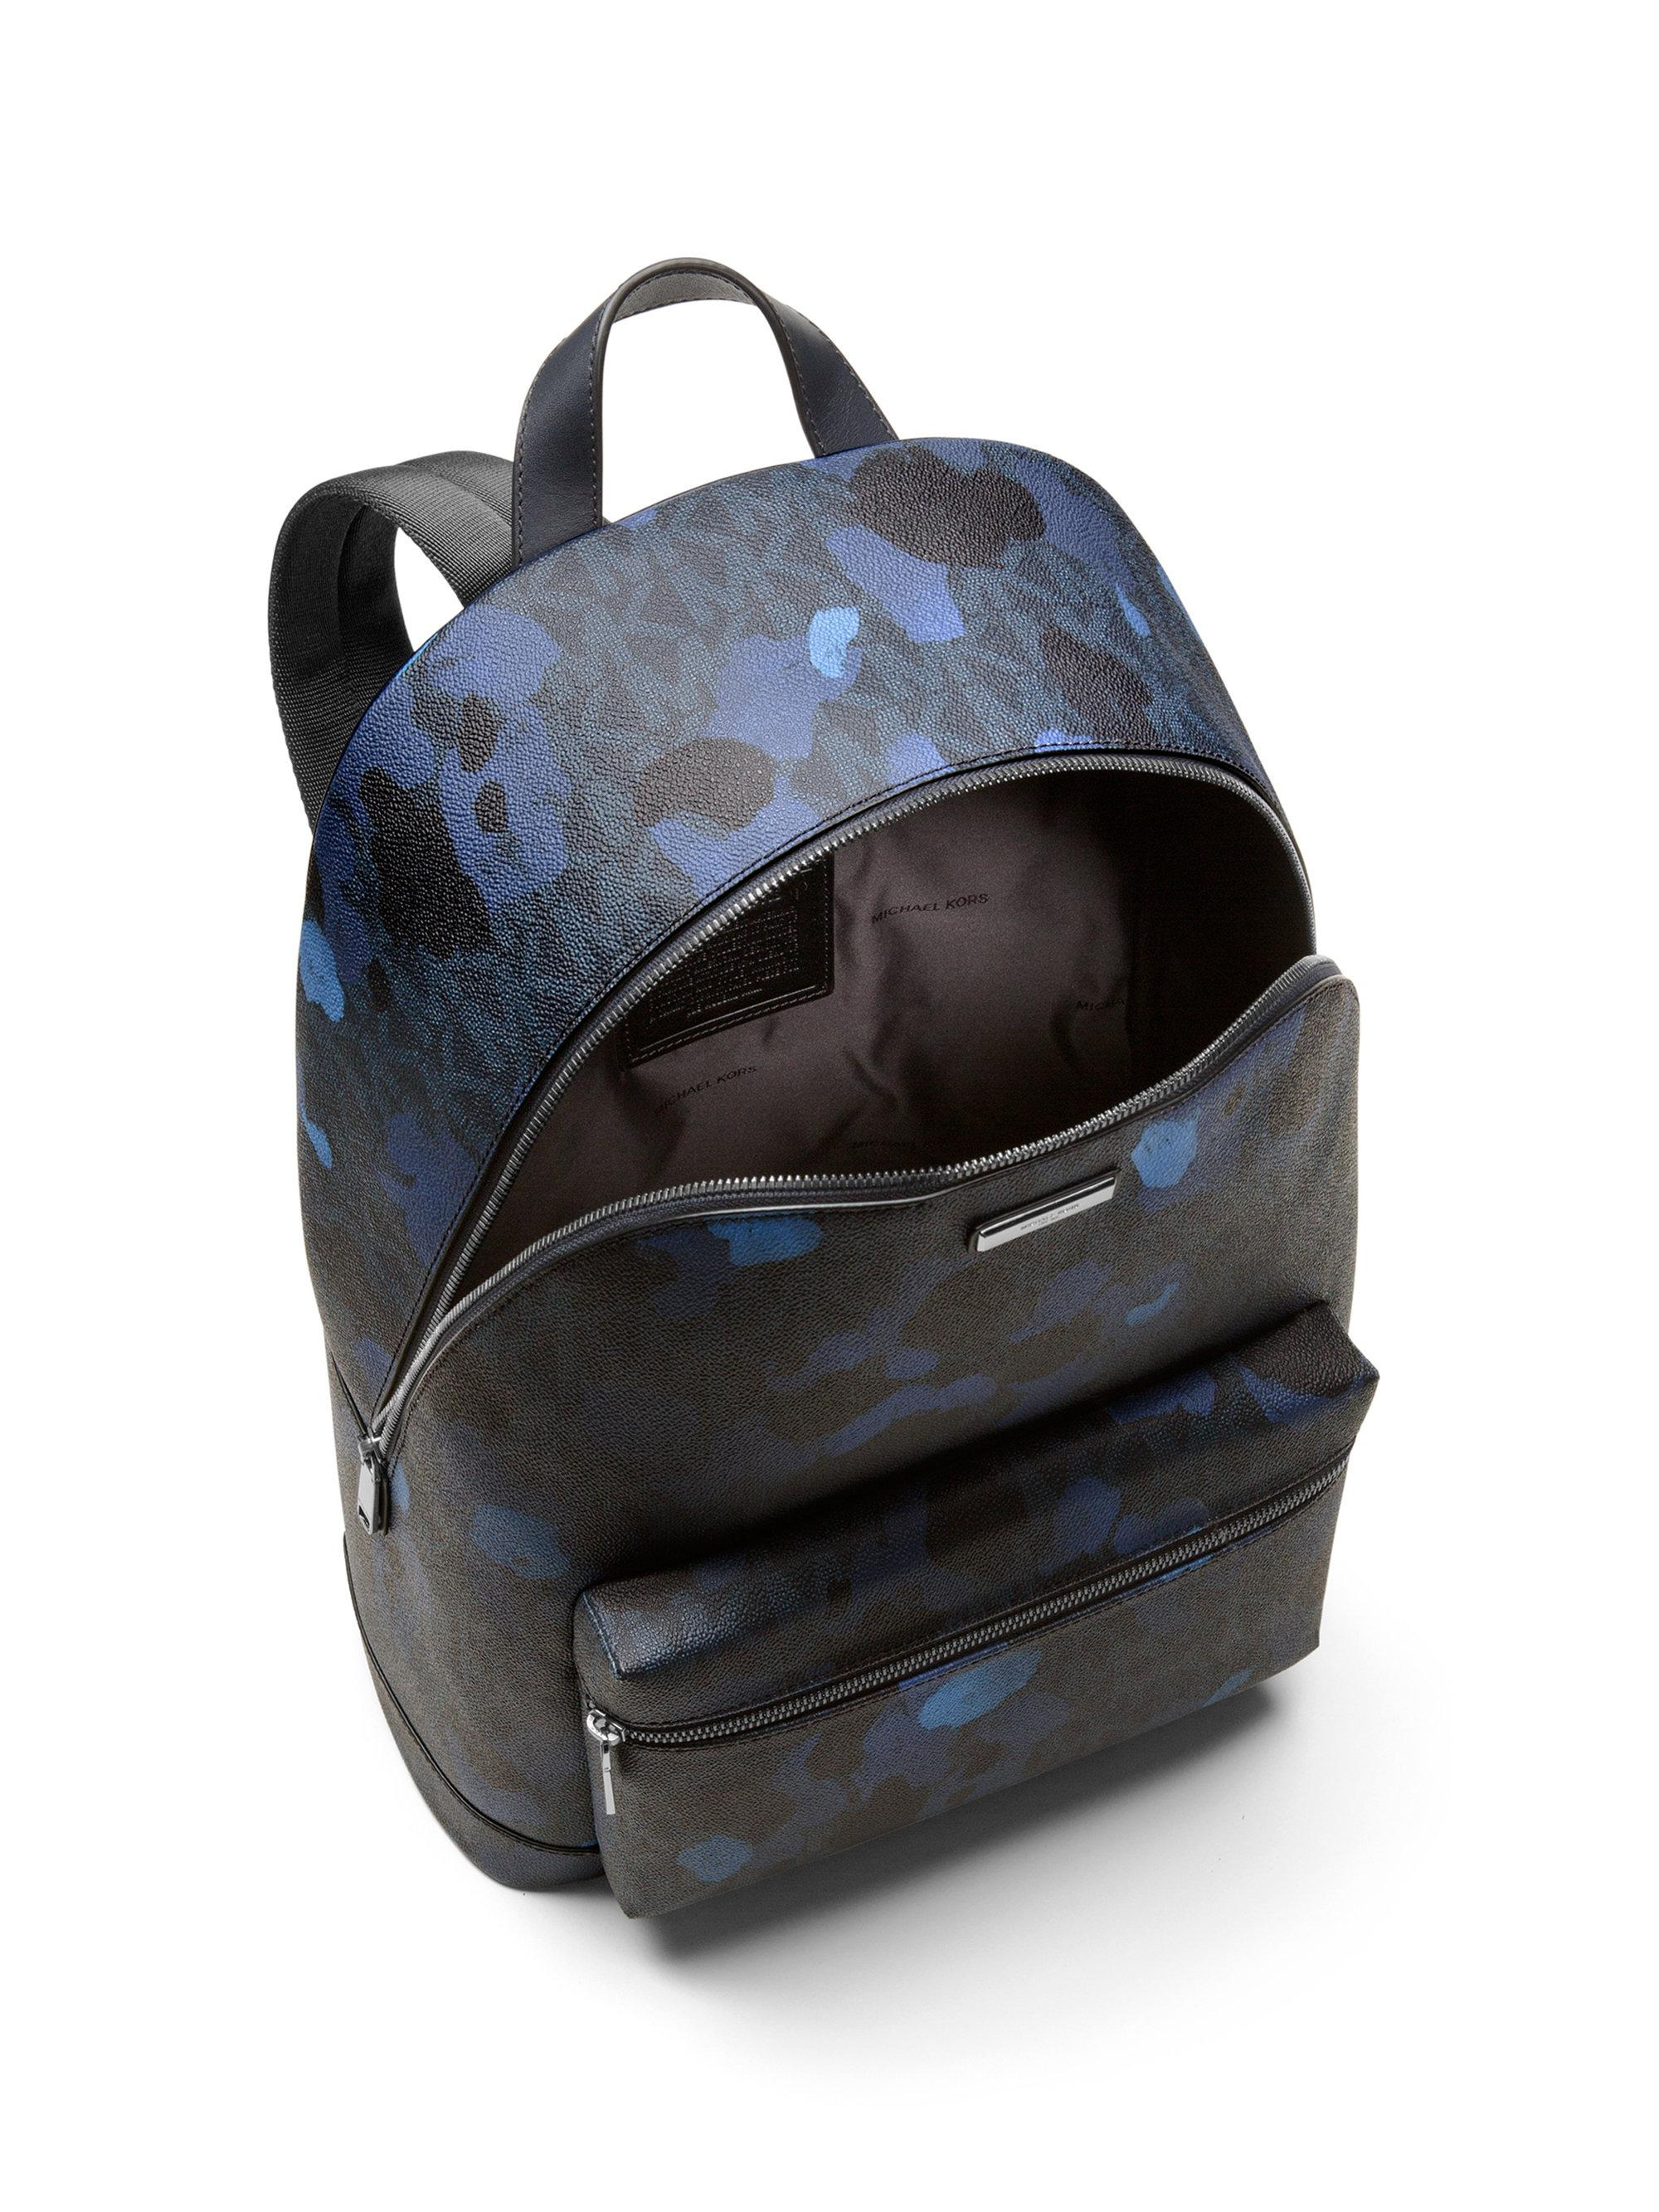 279c72b362f784 ... promo code for lyst michael kors camo printed canvas backpack in blue  for men af962 08832